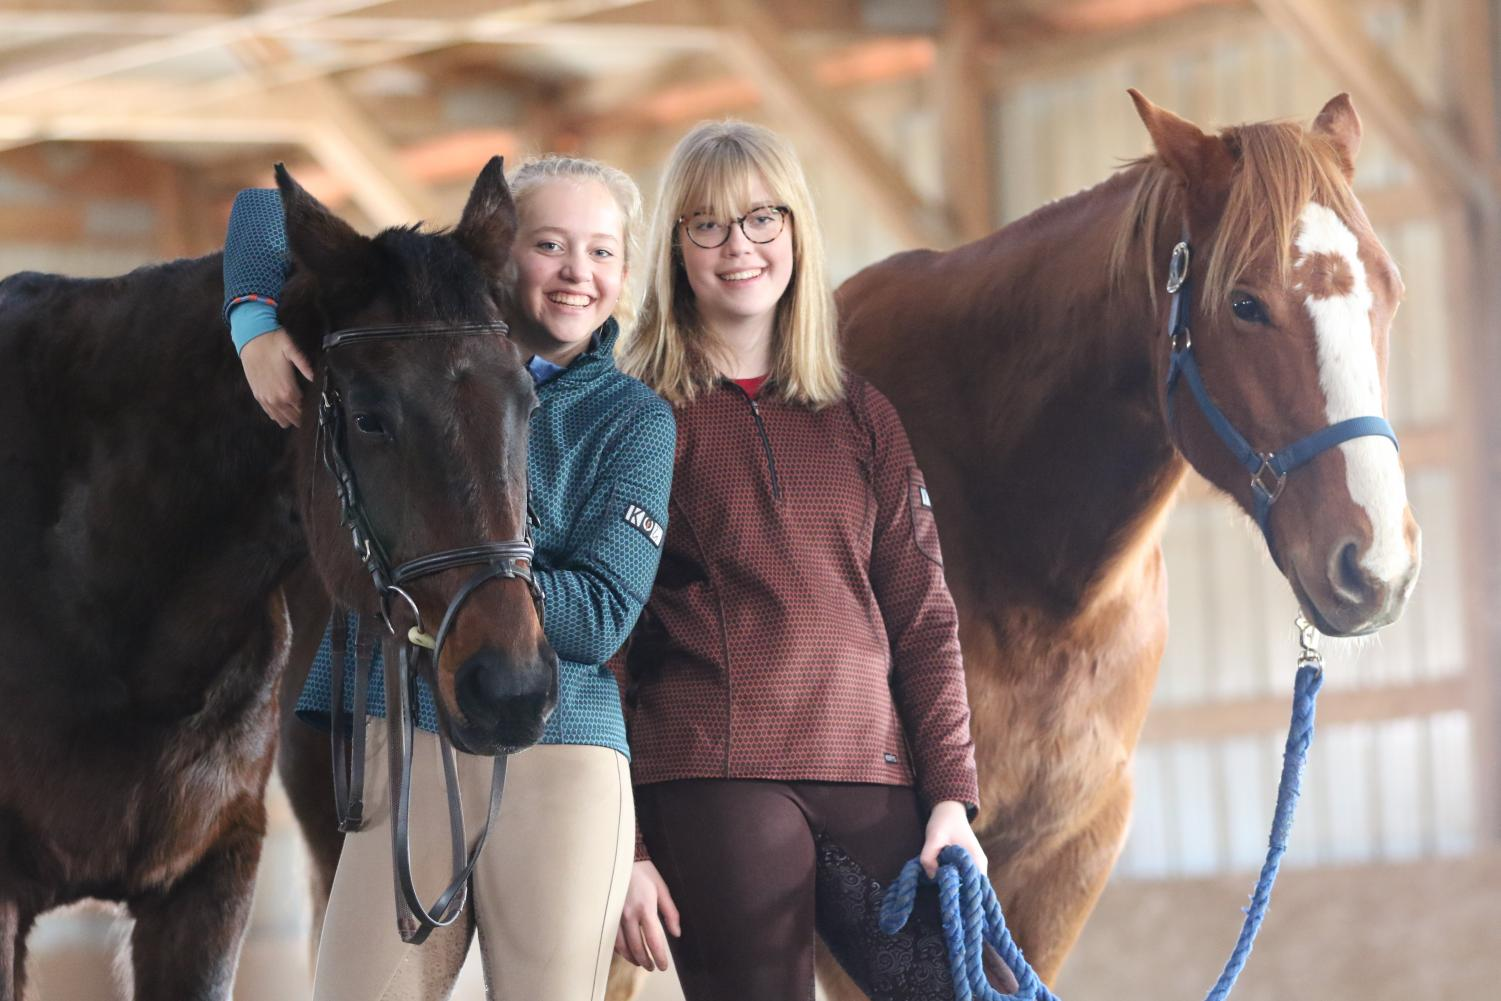 Alex '20 and Rachel Marsh '22 with the horses they call friends.